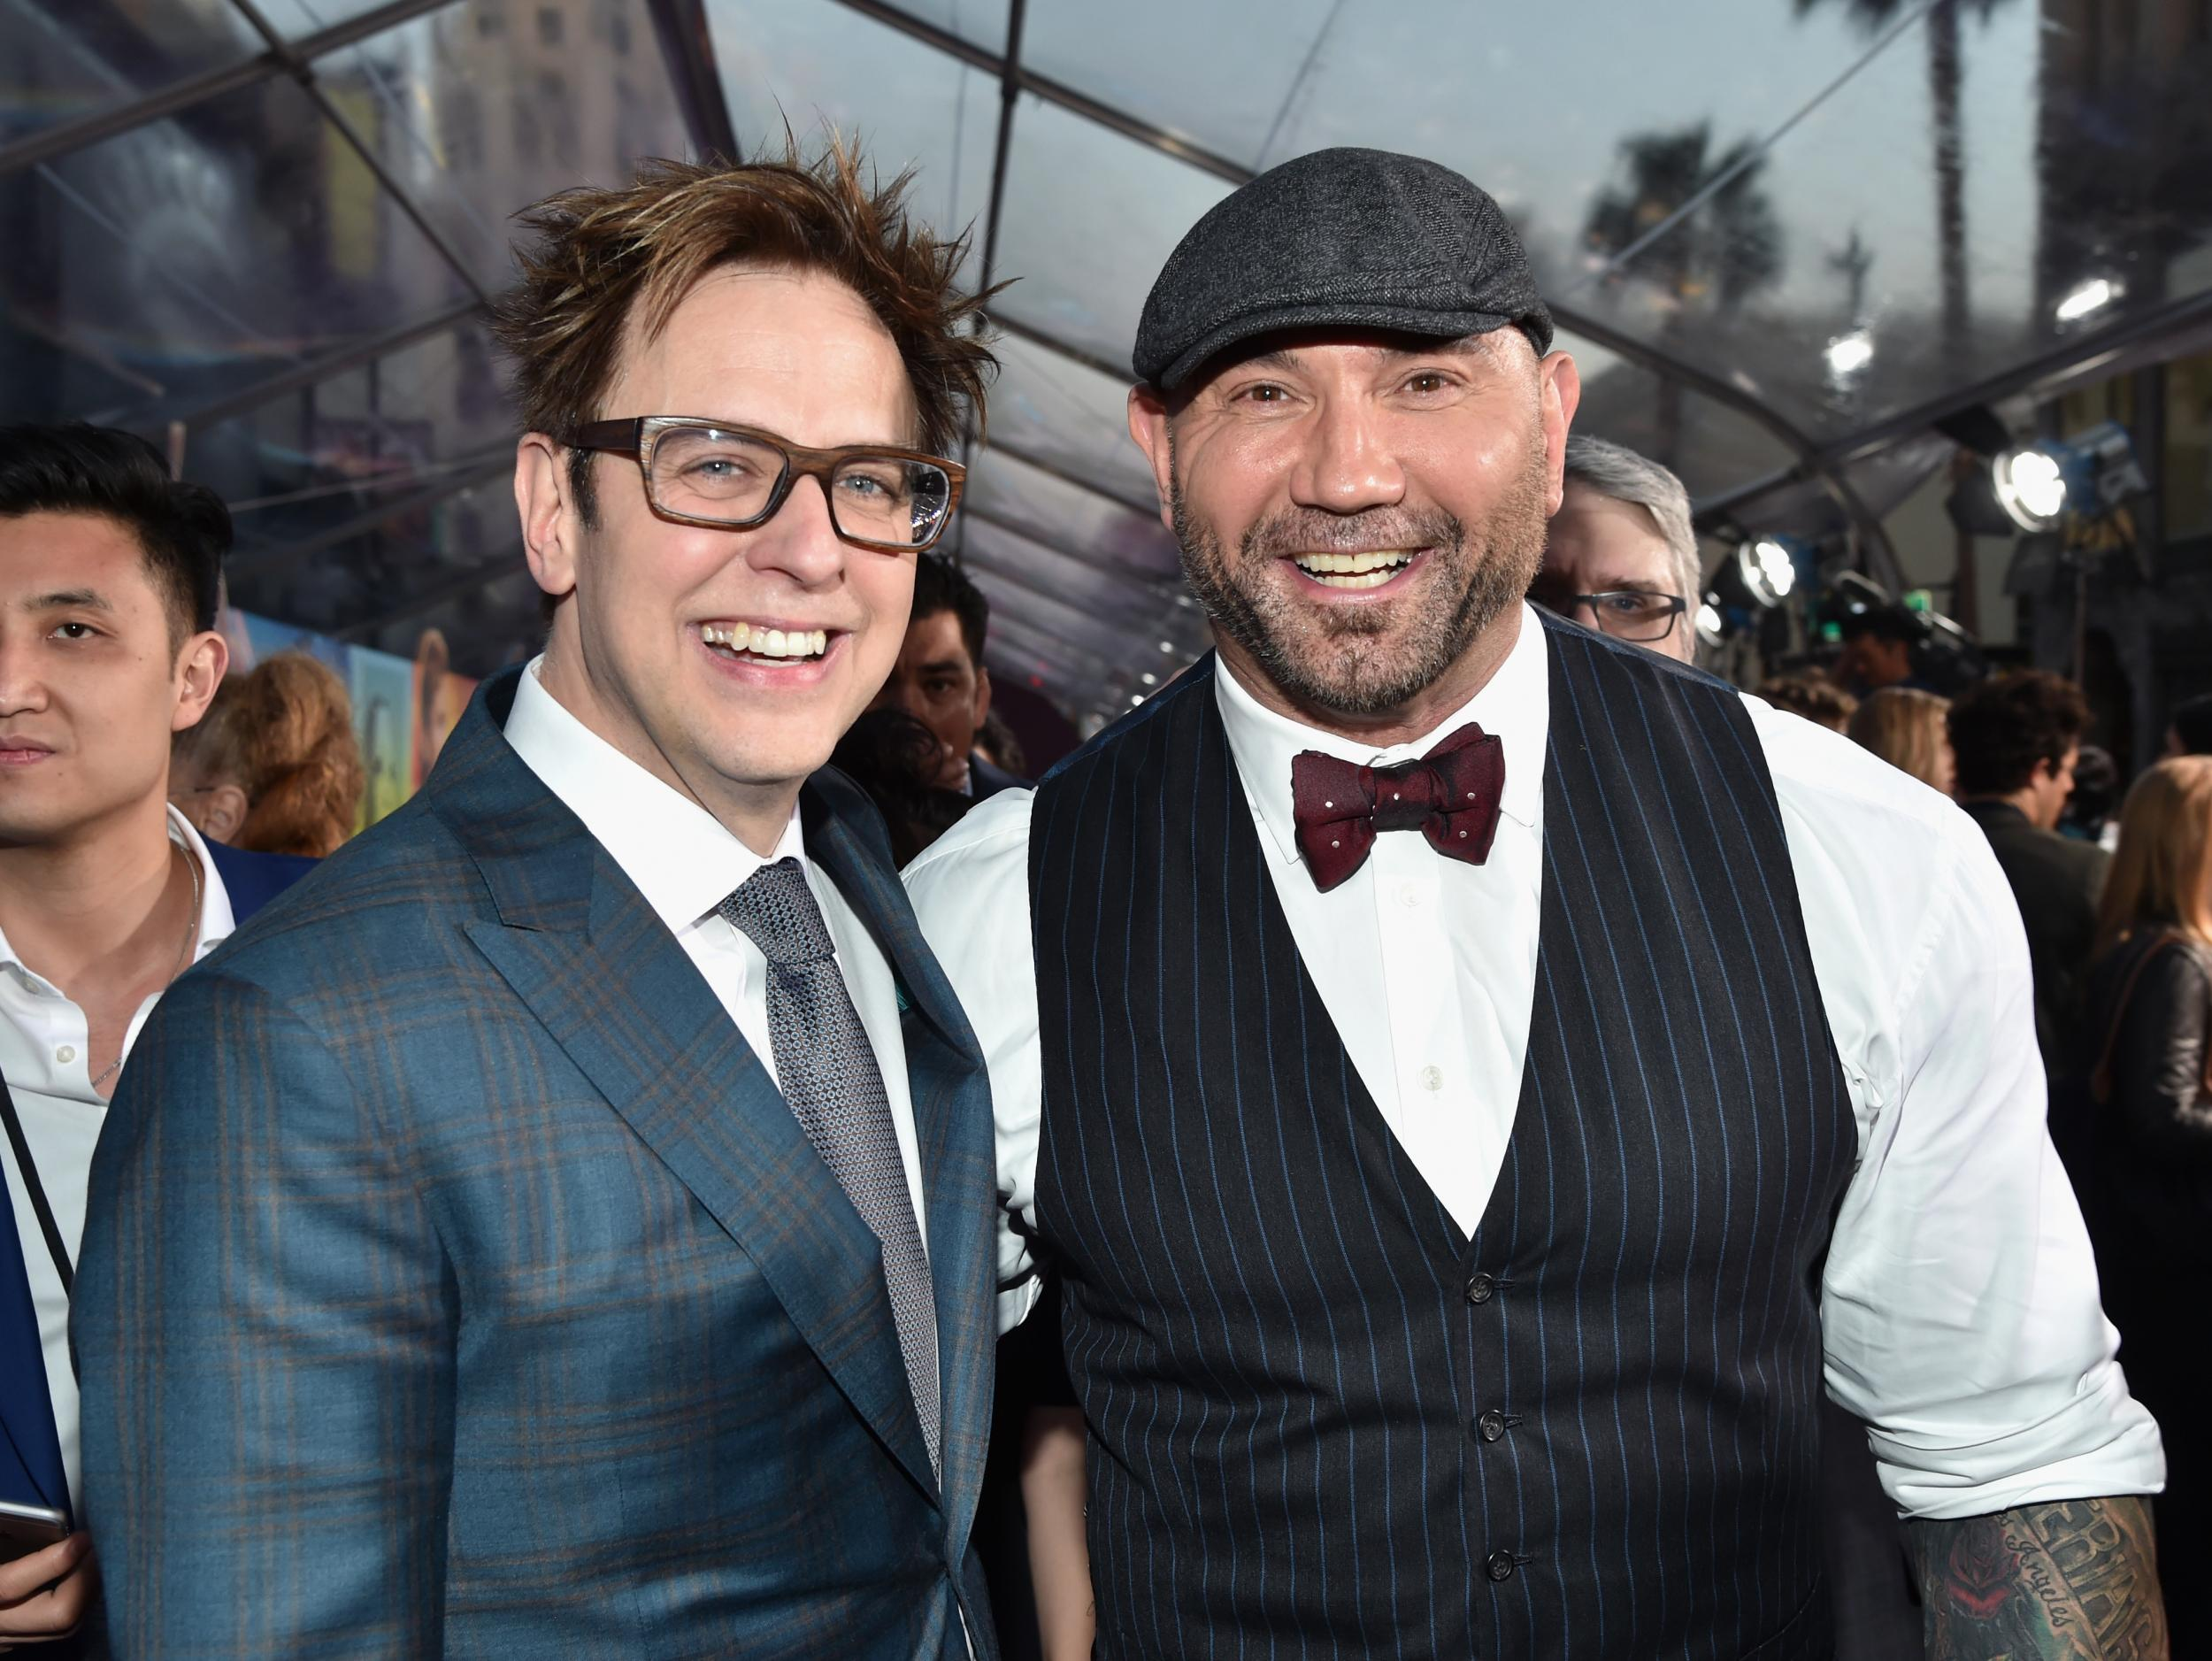 Dave Bautista Thanks Disney For Removing James Gunn From Guardians Of The Galaxy  The Independent